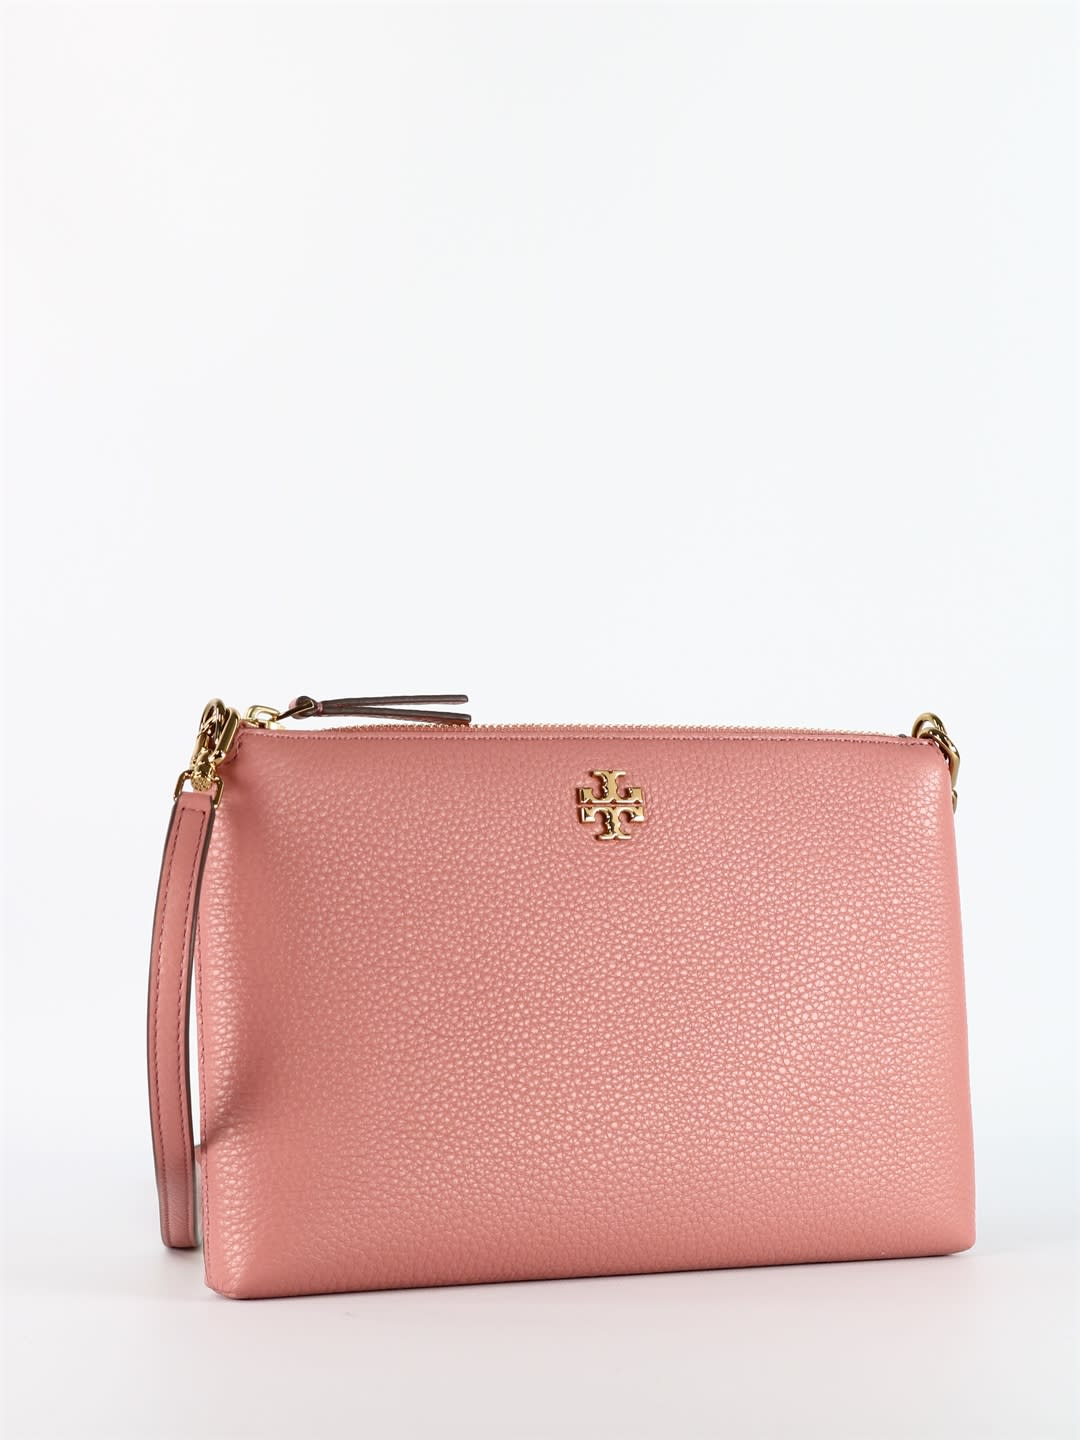 Tory Burch Kira Leather Bag Pink